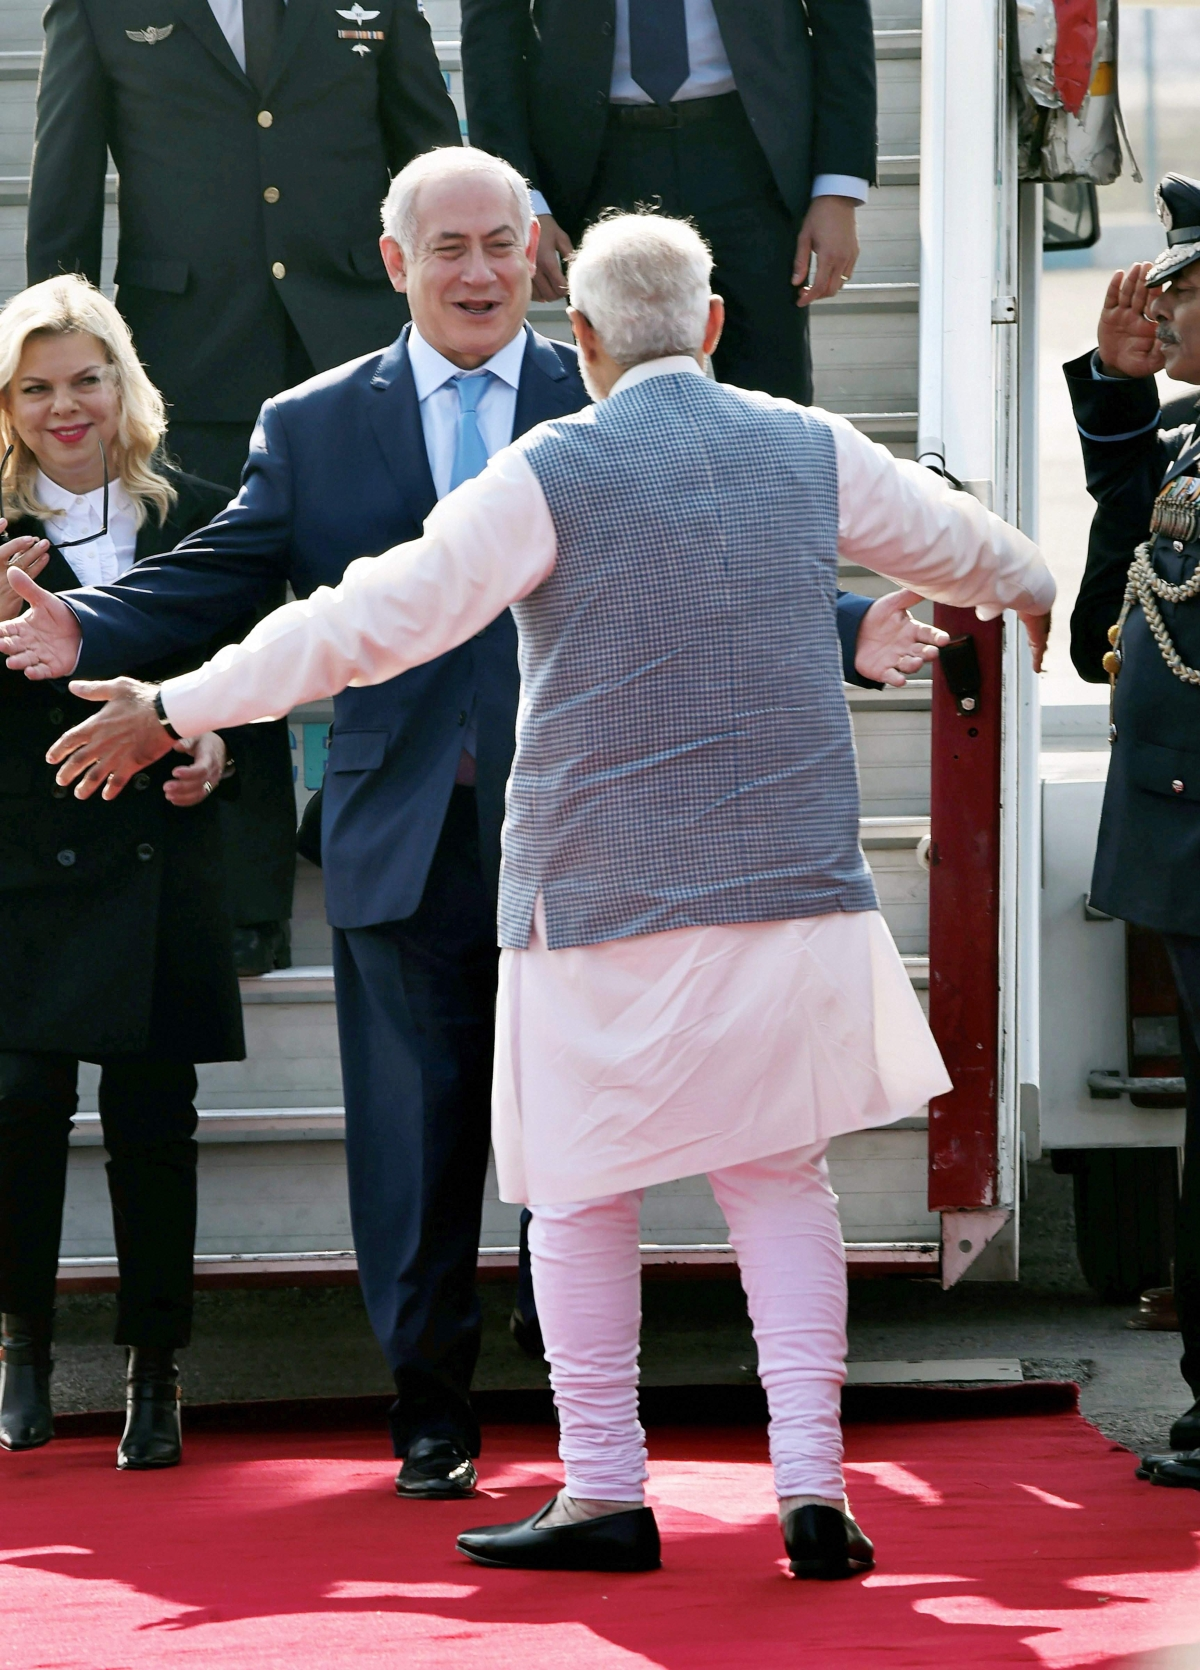 Prime Minister Modi broke protocol to personally receive  Benjamin Netanyahu with a hug as he arrived in India for a six-day visit. He also shook hands with Netanyahu's wife Sara.